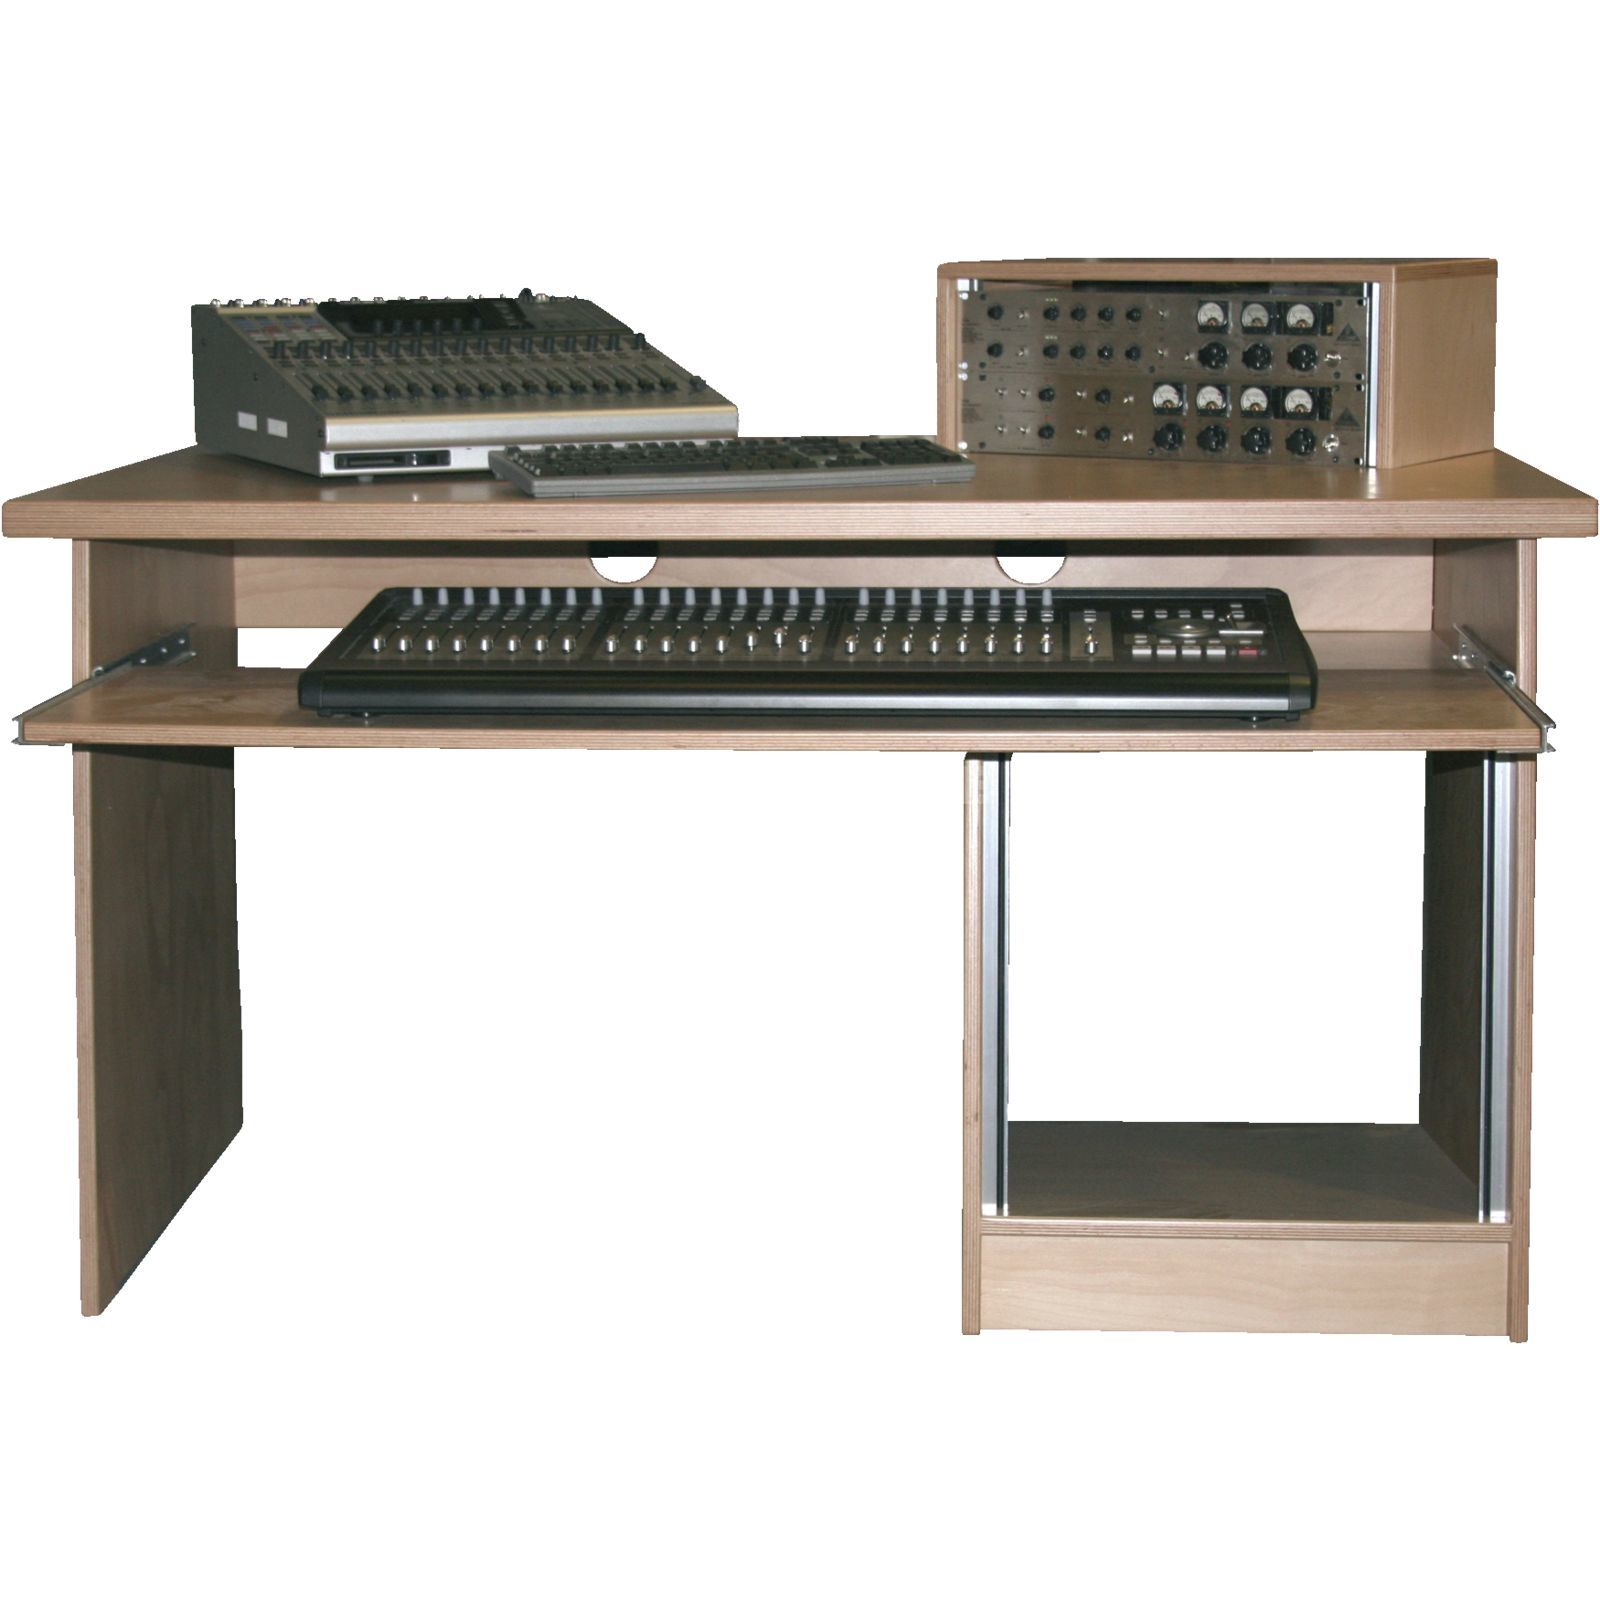 MUSIC STORE MINIstation Production Table Beech lack., 1.5x0.9m, 10HU-UB Produktbillede